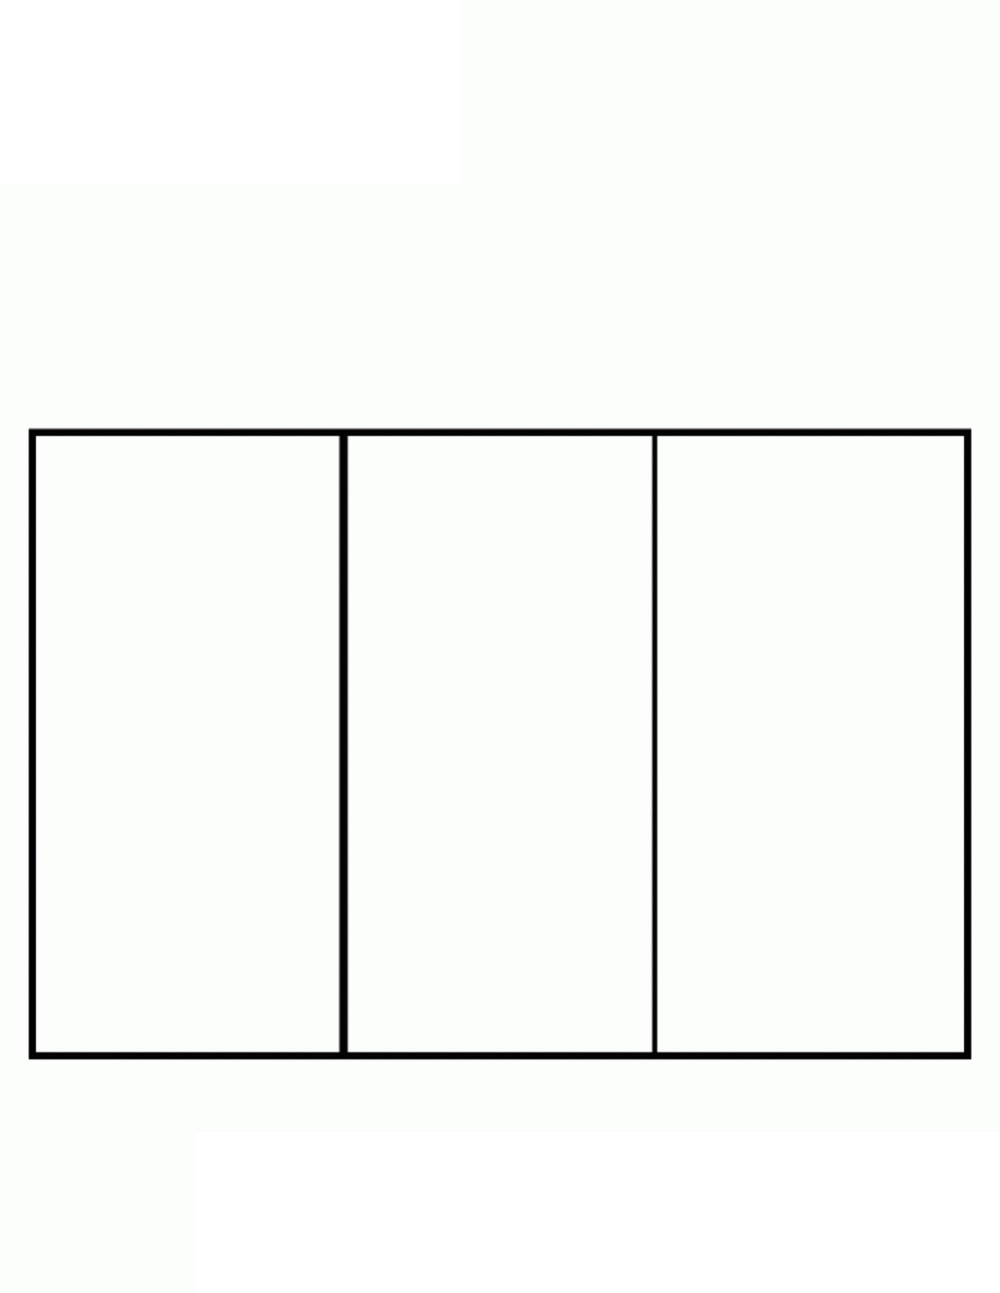 Italy Flag Coloring Page For Kids K5 Worksheets